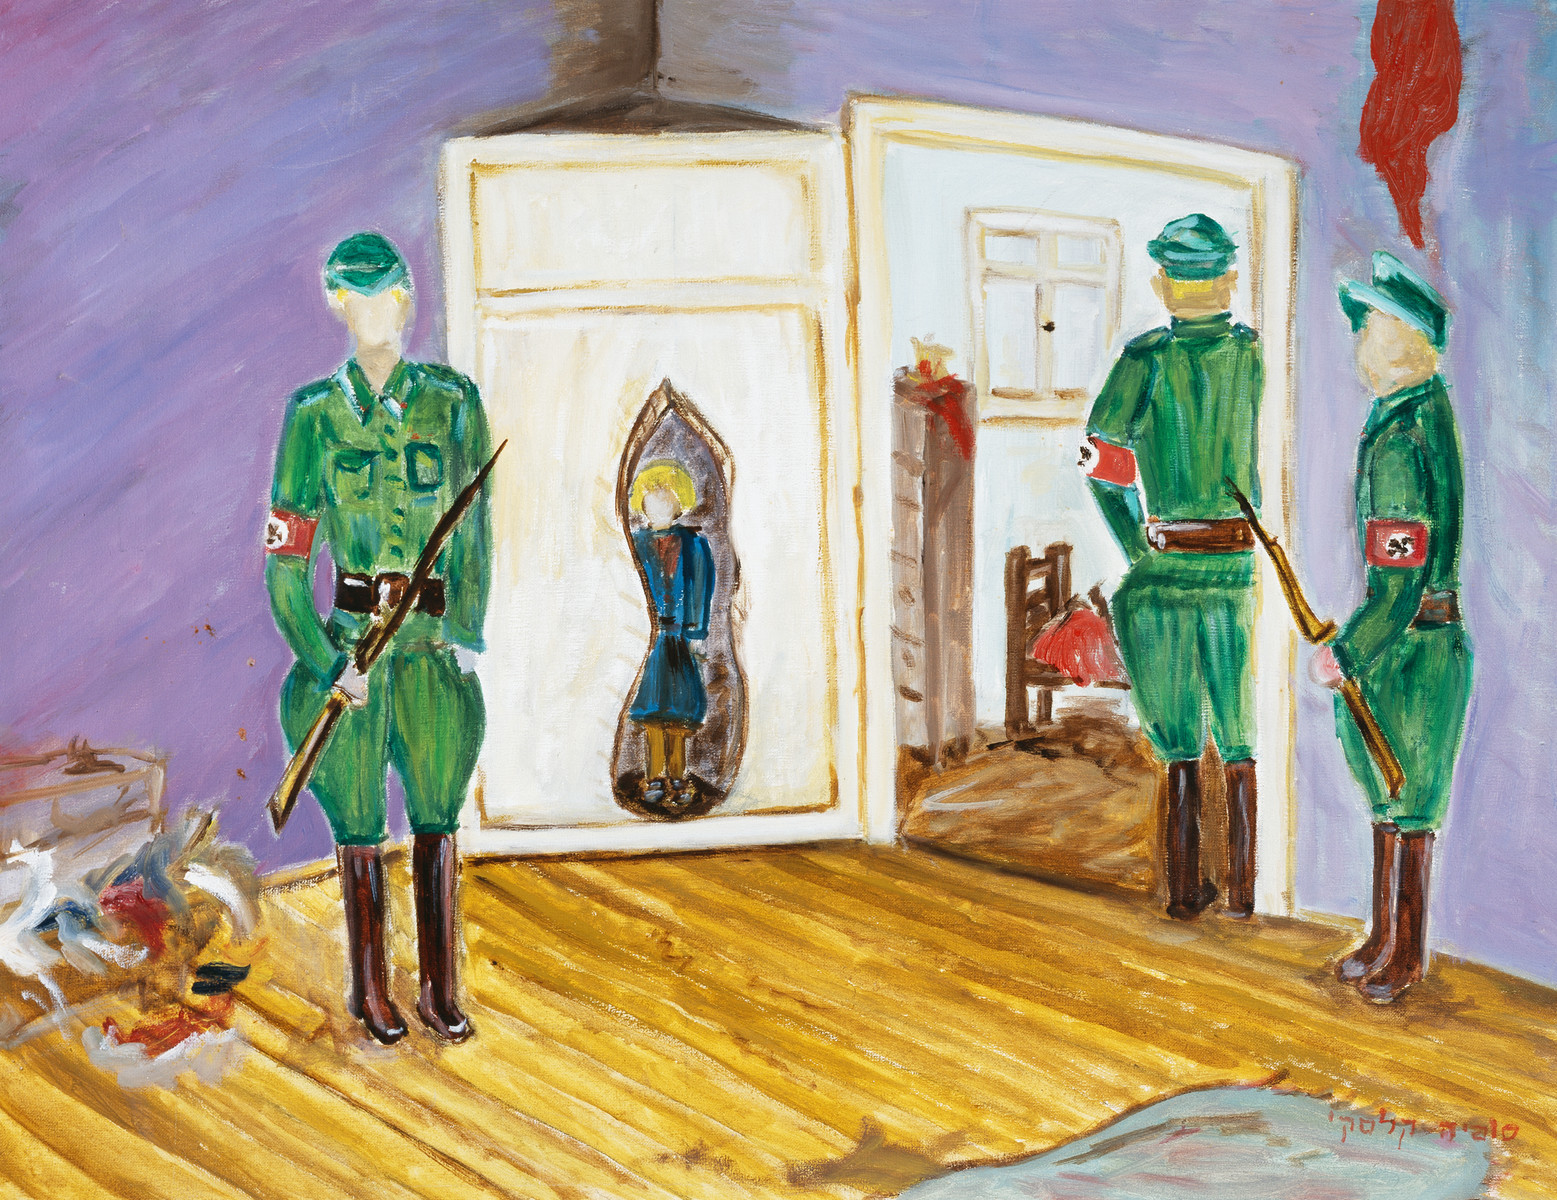 """A painting by artist Sophia Kalski depicting an image of the Lwow ghetto.   The artist writes """"In the winter of 1943, in the city of Lwow, during the aktion, I didn't have time to hide in the bunker or in the basement and I was forced to hide behind the door of an abandoned house for 24 hours without food, without drink, standing. I was so lucky that according to the best of my knowledge, three Germans entered the room inside the house, and they saw  that it was empty. Two Germans immediately left outside, and the third one wanted to continue the search. He wanted to close the door, but to my great fortune, his superior called him, so he left the door alone and he didn't see me, and that is how I survived."""""""